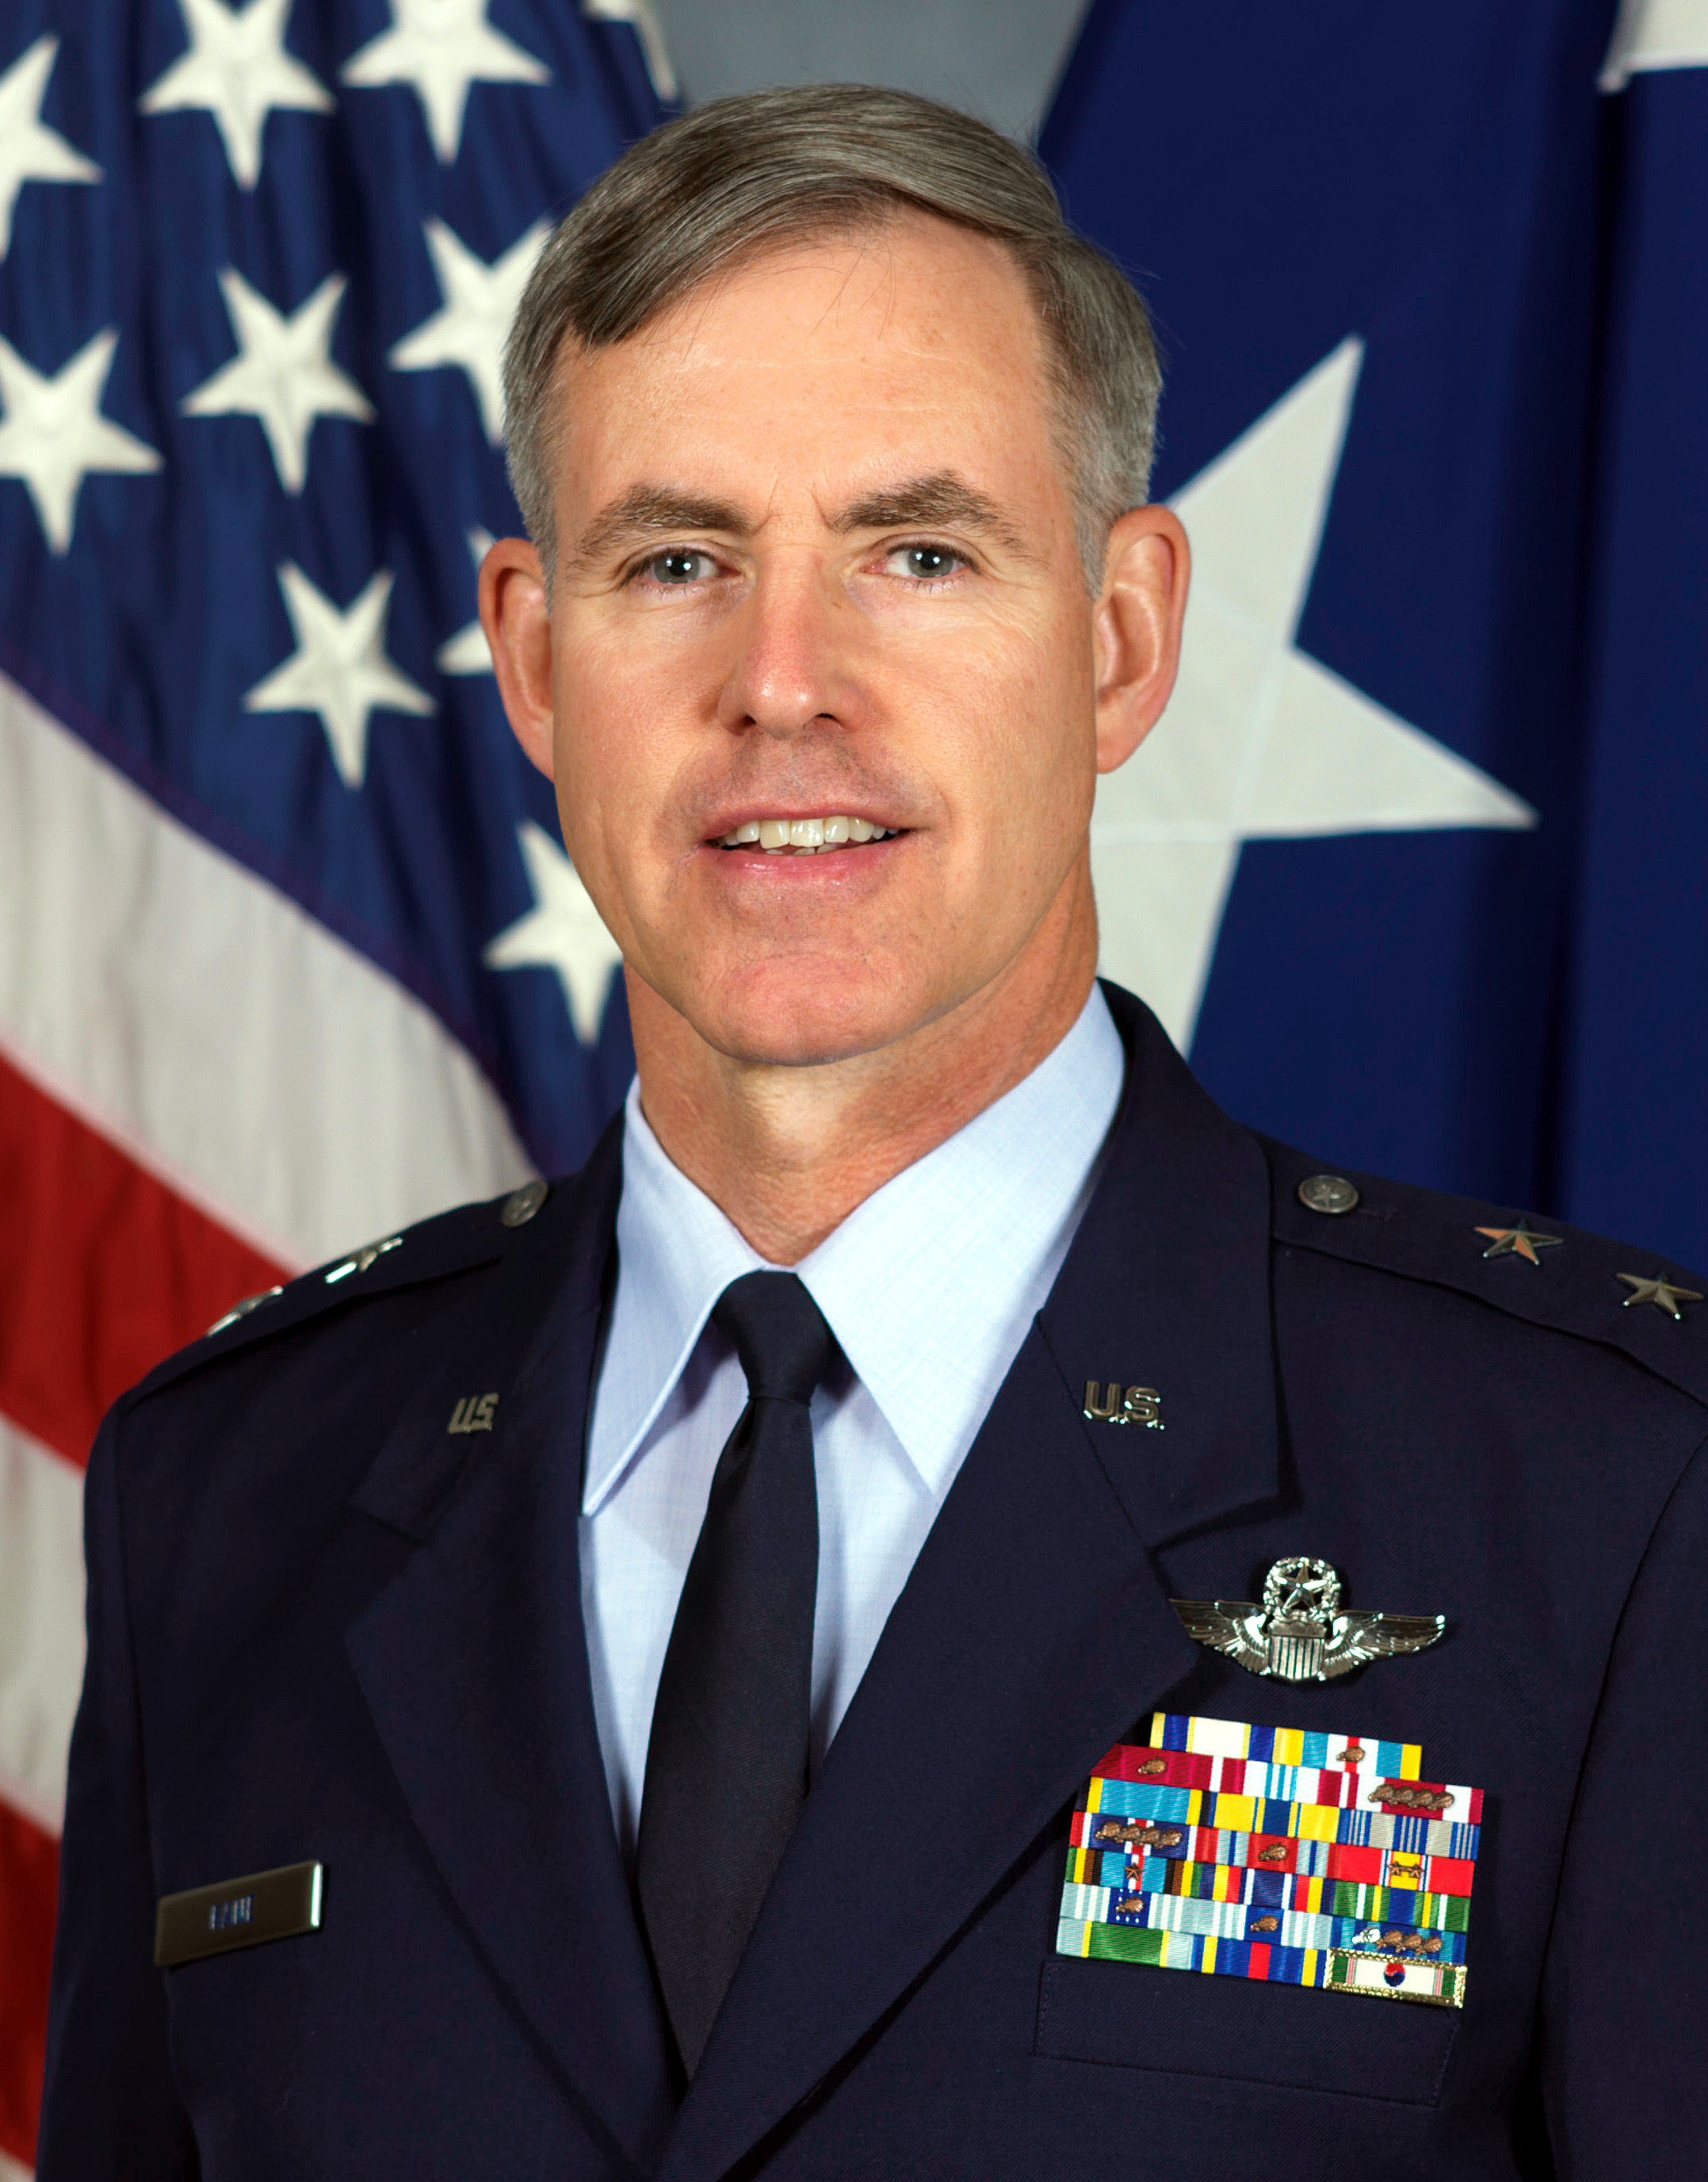 Tom kennedy us army claims service - Thomas P Kane Is Director Of Strategic Plans Requirements And Programs Headquarters Air Mobility Command Scott Air Force Base Ill General Kane Is